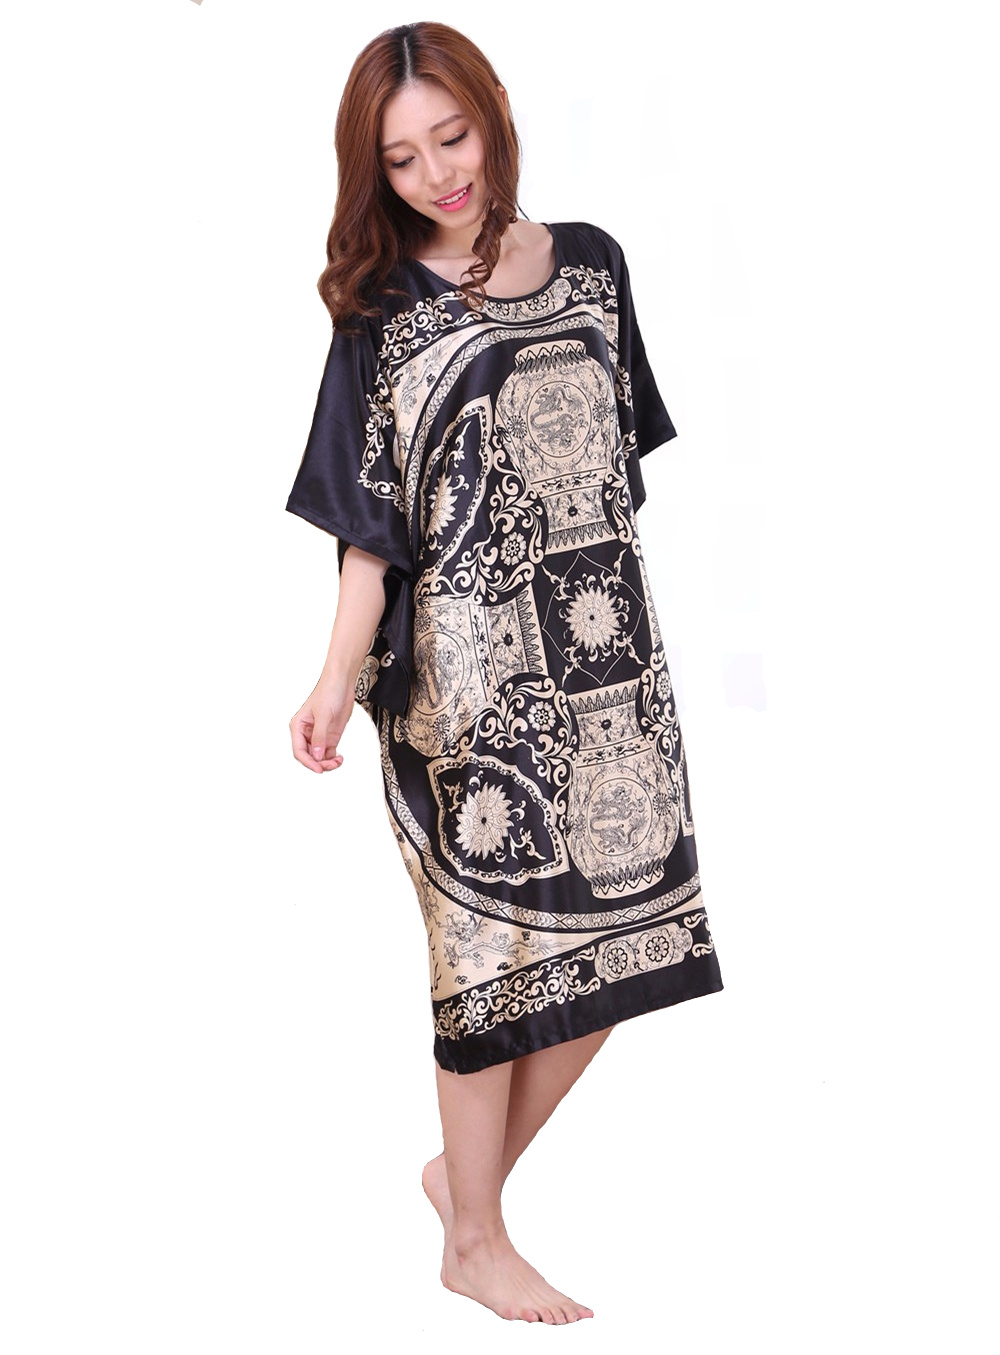 BLACK Plus Size Women's Faux Silk Robe New Fashion Style Summer Lady Bath Gown Bathrobe Nightgown Sleepwear Mujer Pijama 0524